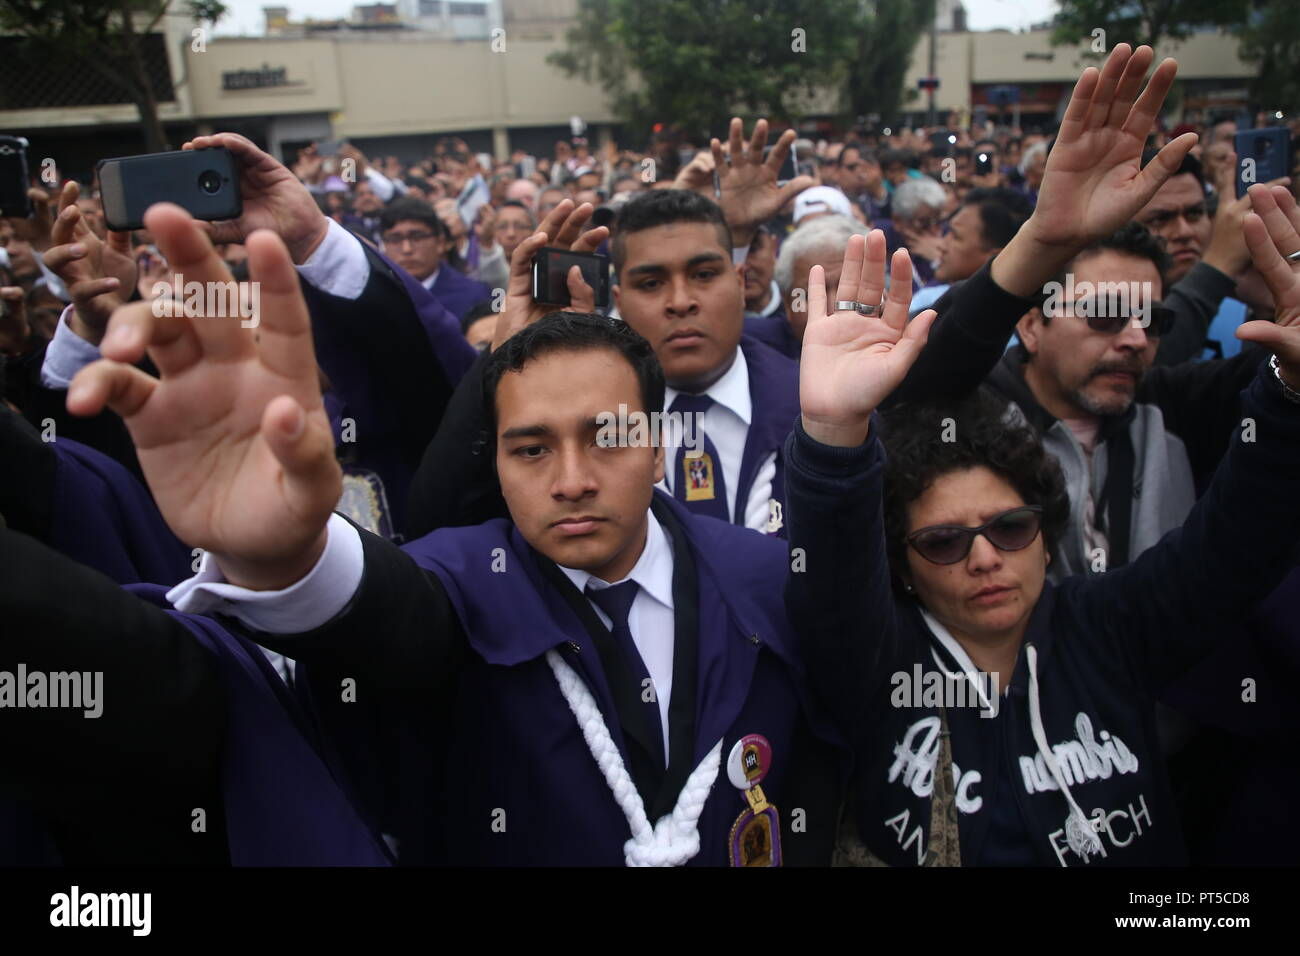 Lima, Peru. 06th Oct, 2018. Believers raise their arms during a procession in honour of the 'Senor de los Milagros' (Lord of Miracles). 'Senor de los Milagros' is a Catholic festival that is celebrated every year in Lima. Credit: Geraldo Caso/dpa/Alamy Live News - Stock Image